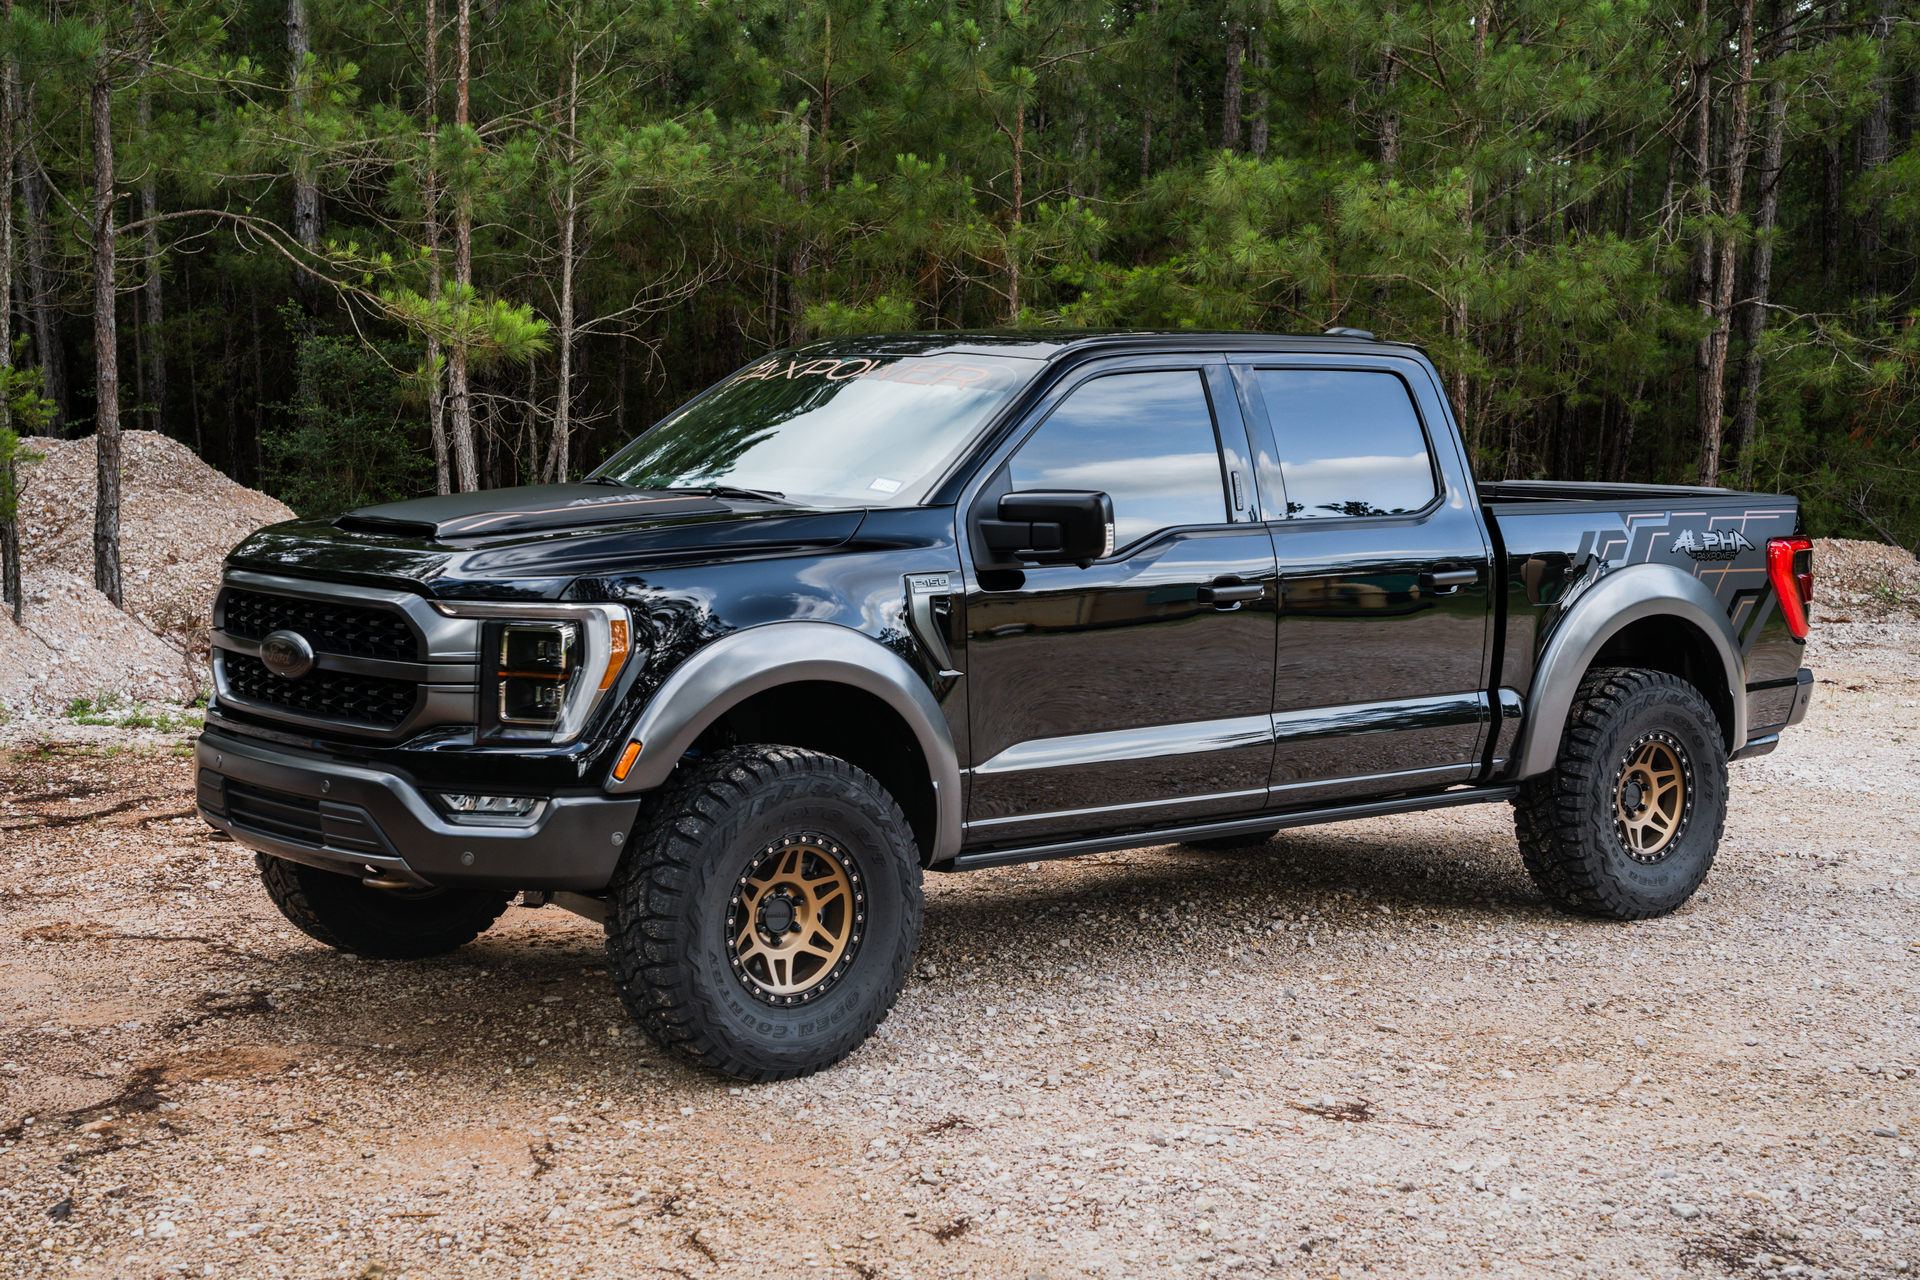 PaxPower has launched its tuning program for the Ford F-150 pickup, landing it with a robust off-road suspension kit and a three-liter Whipple supercharger.